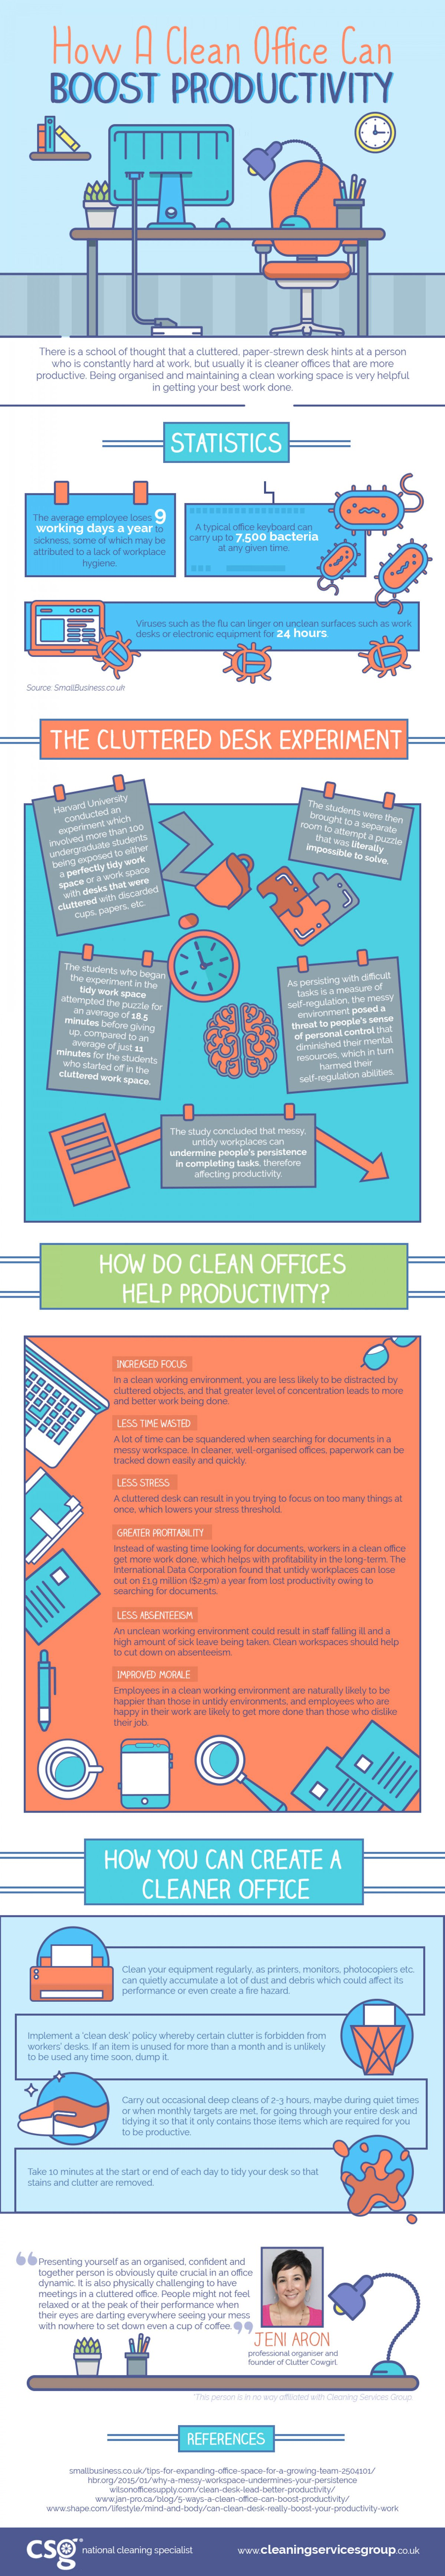 how-a-clean-office-can-boost-productivity-infographic